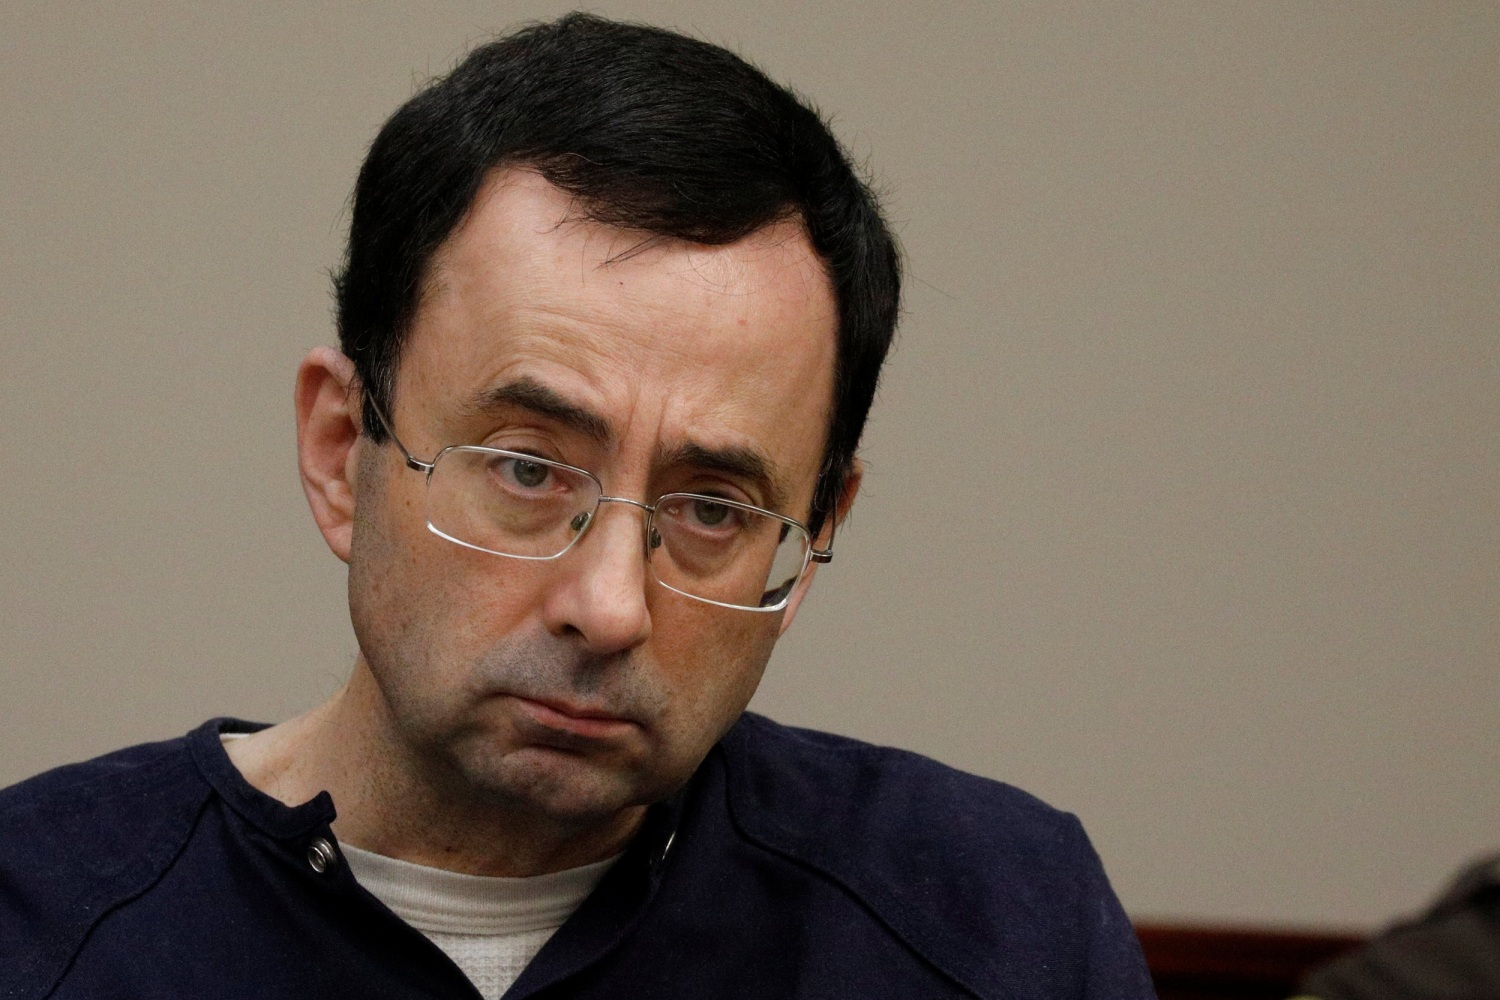 michigan state doctor larry nassar surrounded by enablers